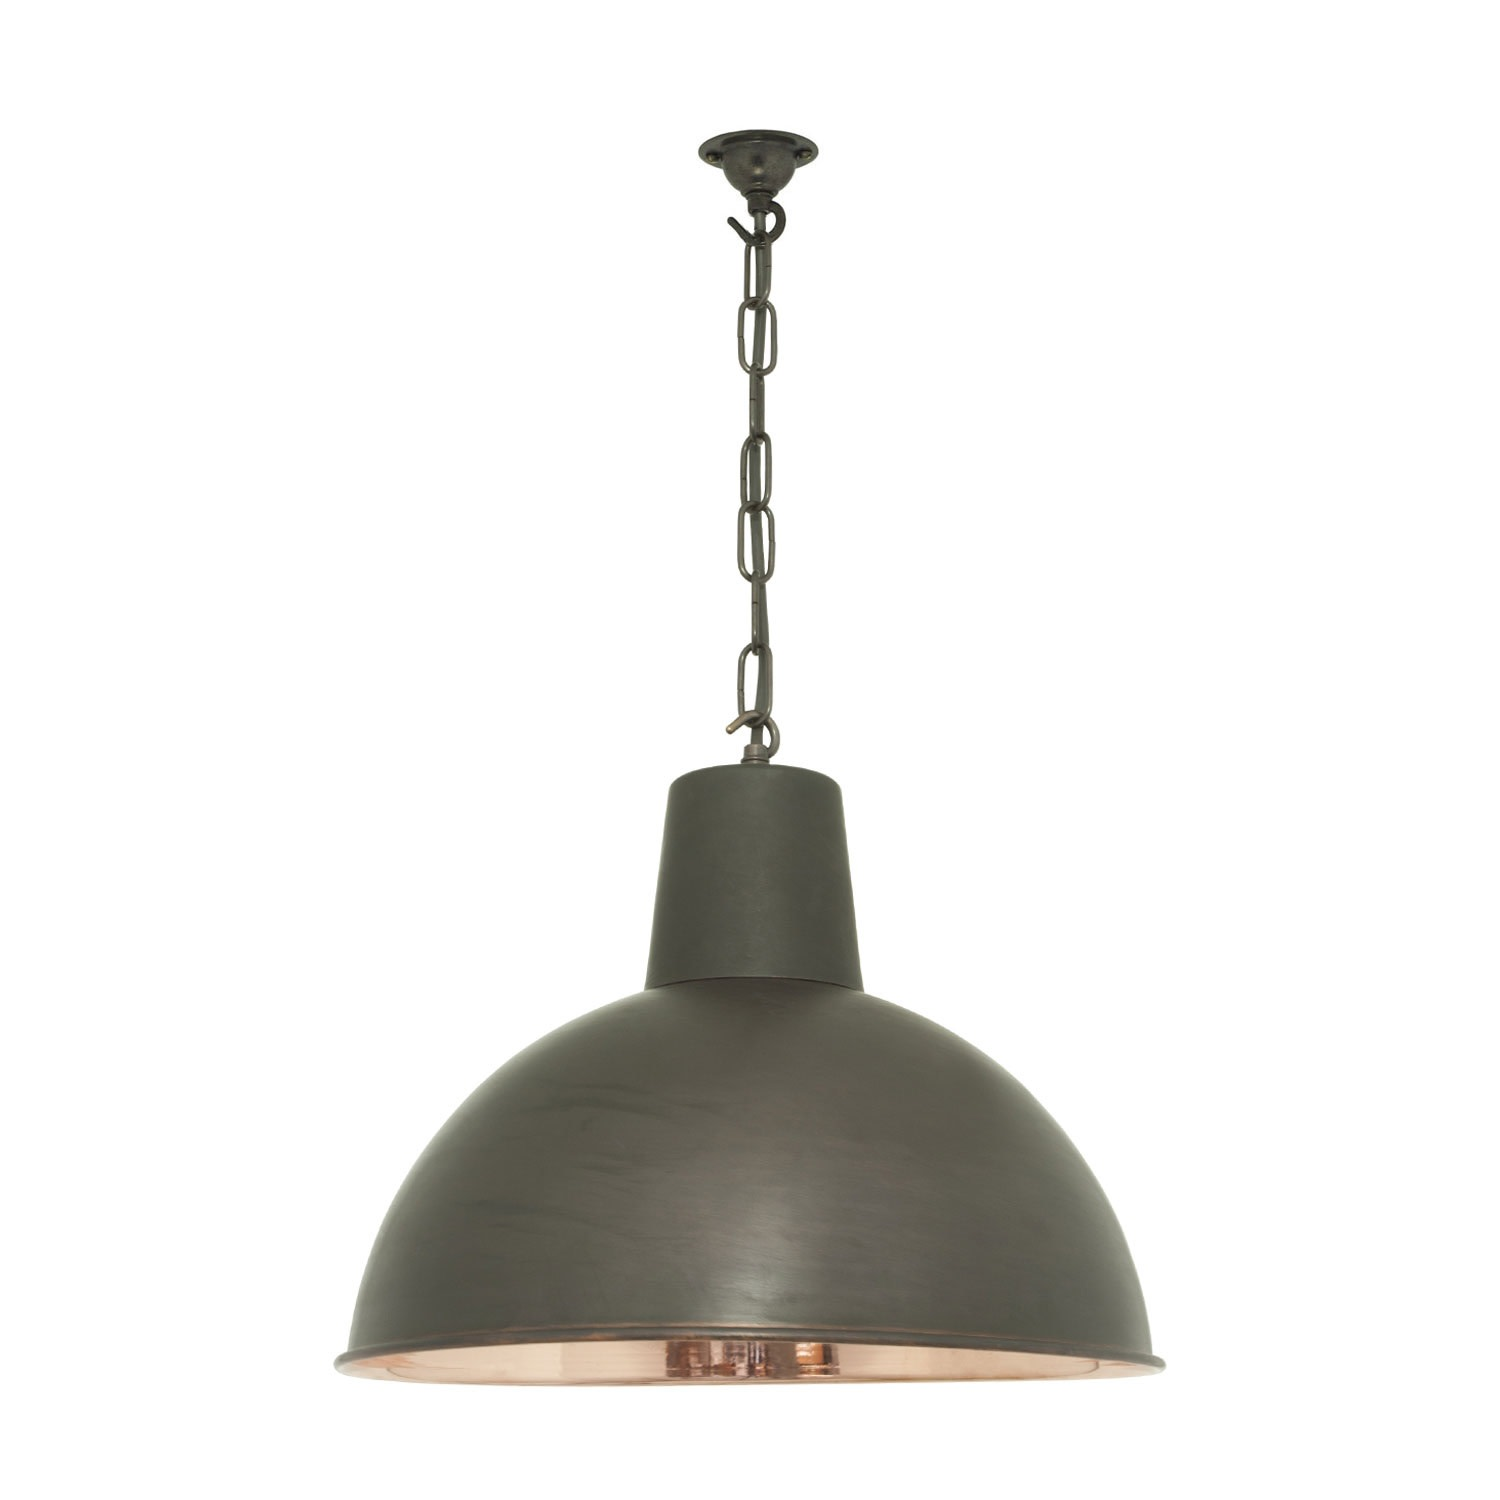 Spun Reflector Pendant Light Weather Copper, Polished Interior, Medium